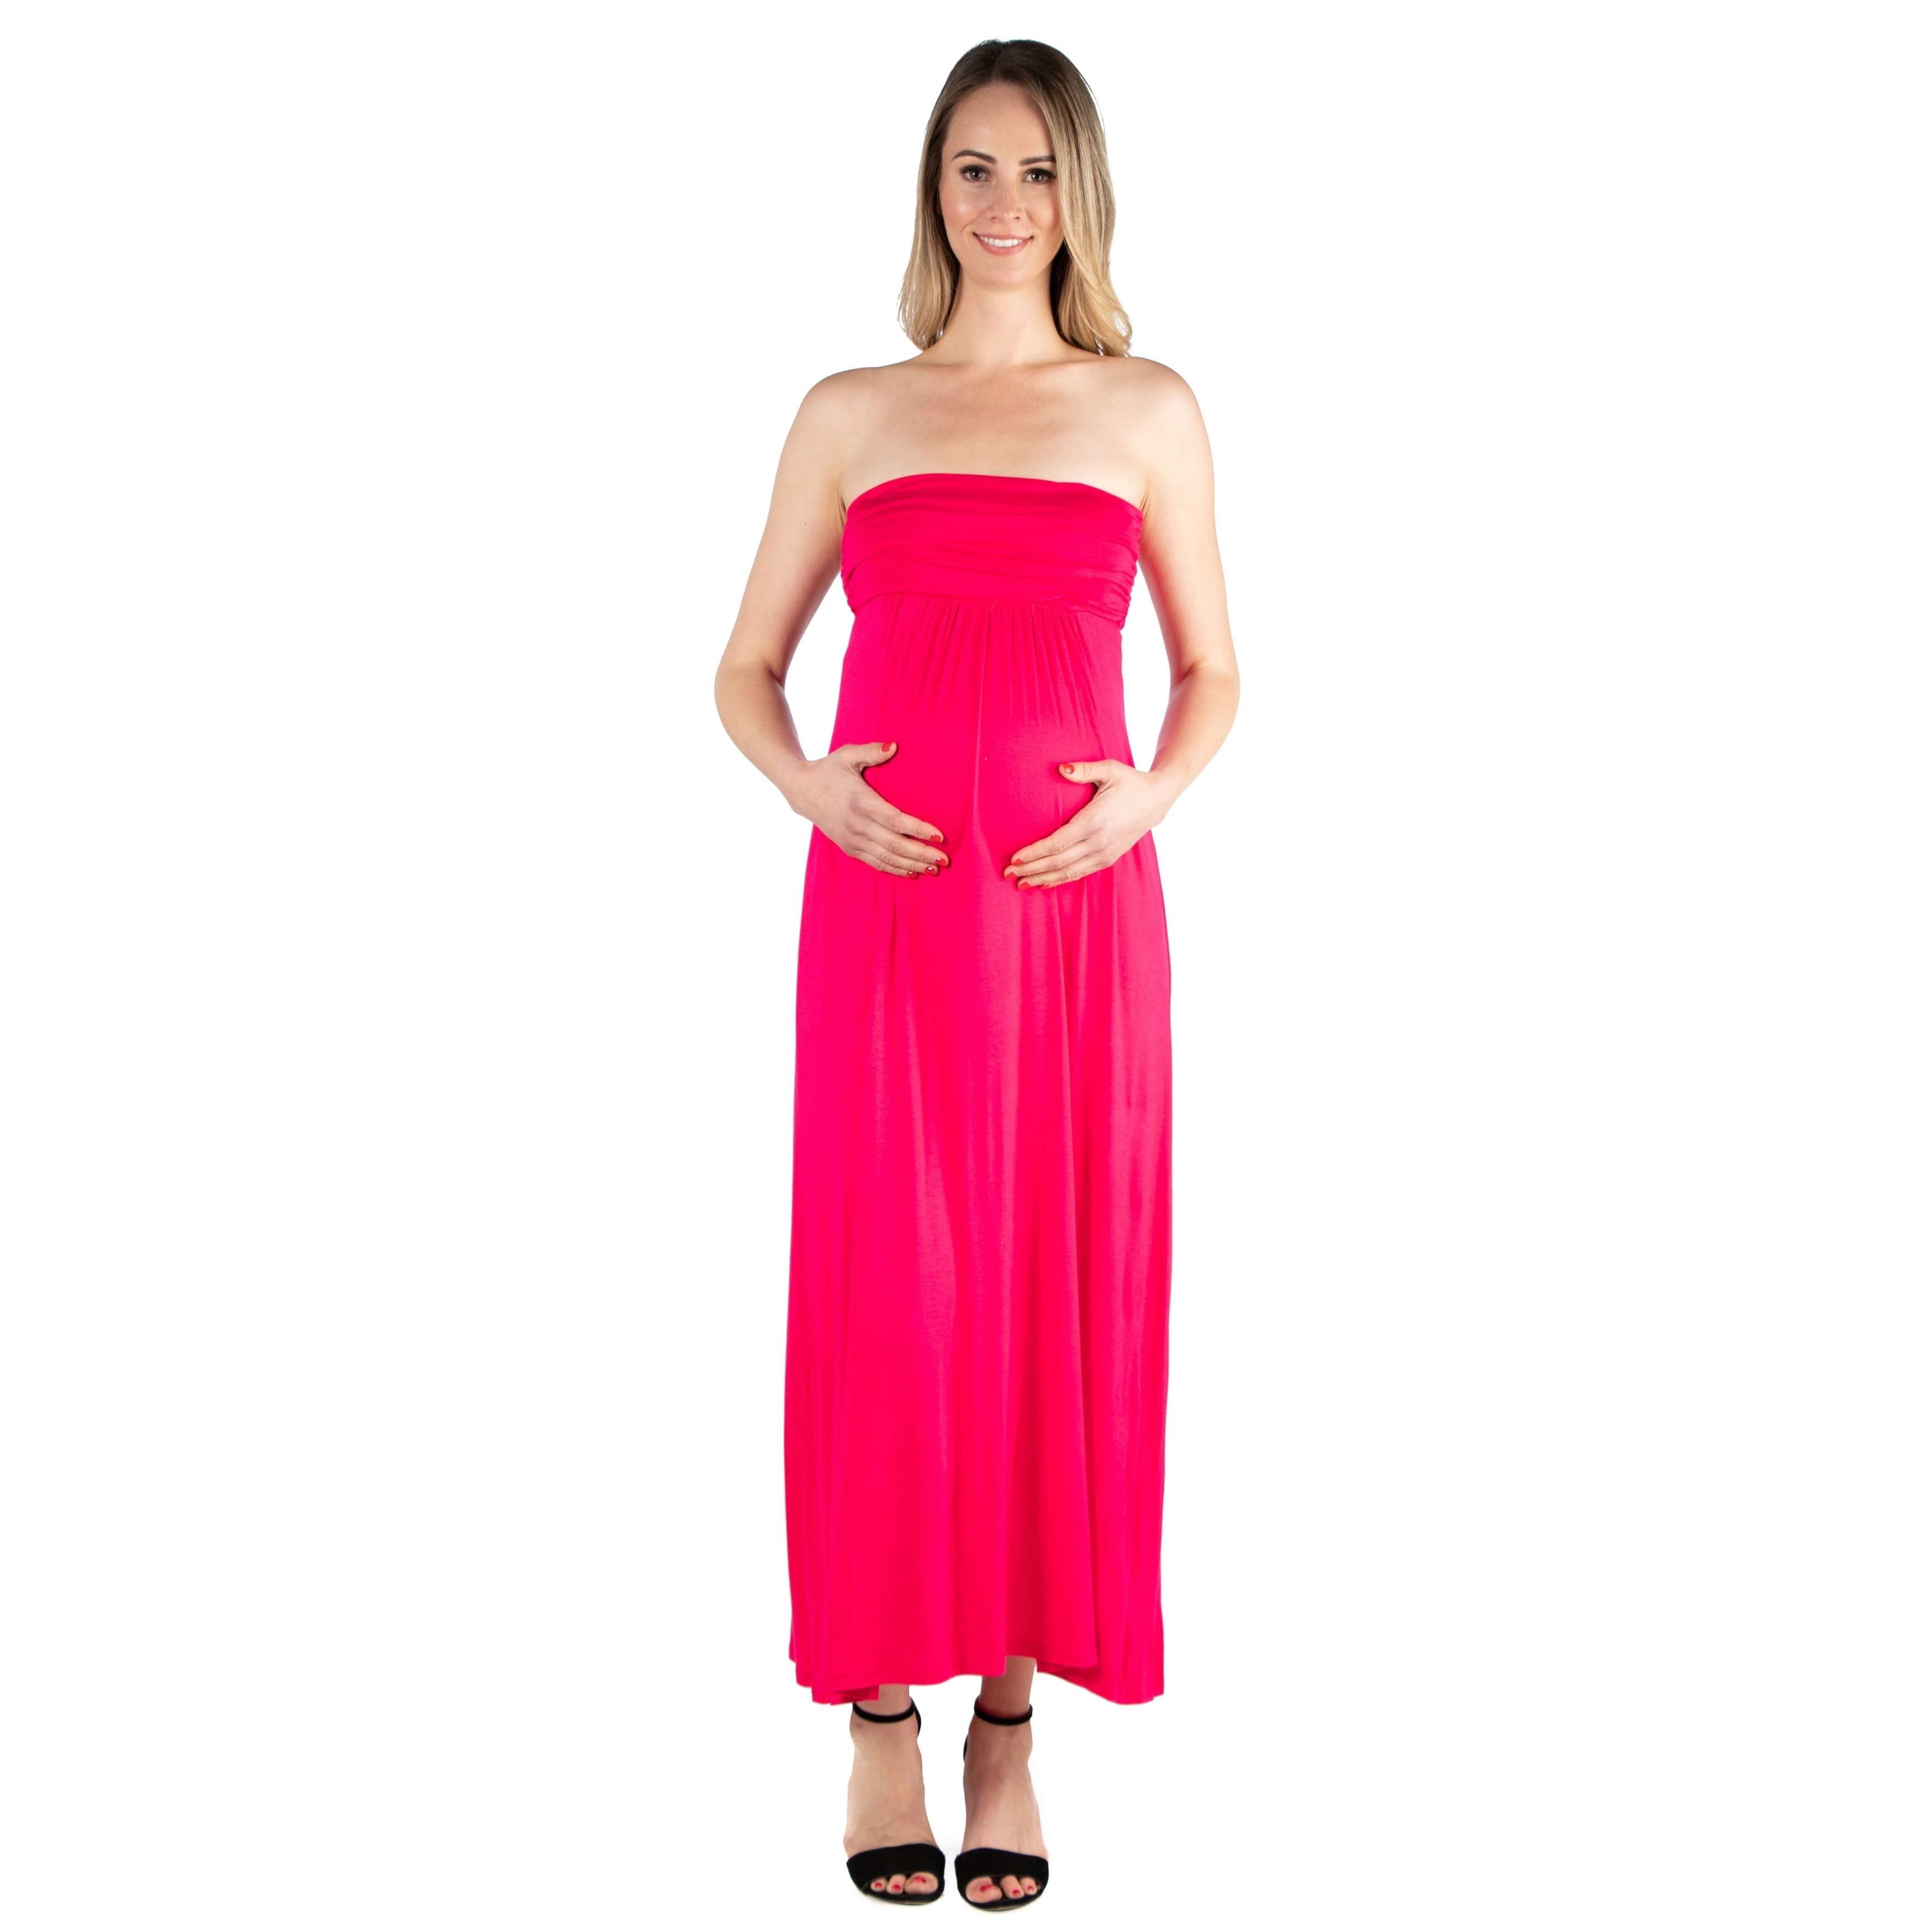 8091fa84f95 Shop 24seven Comfort Apparel Maternity Strapless Maxi Dress - Free Shipping  On Orders Over  45 - Overstock - 28003958